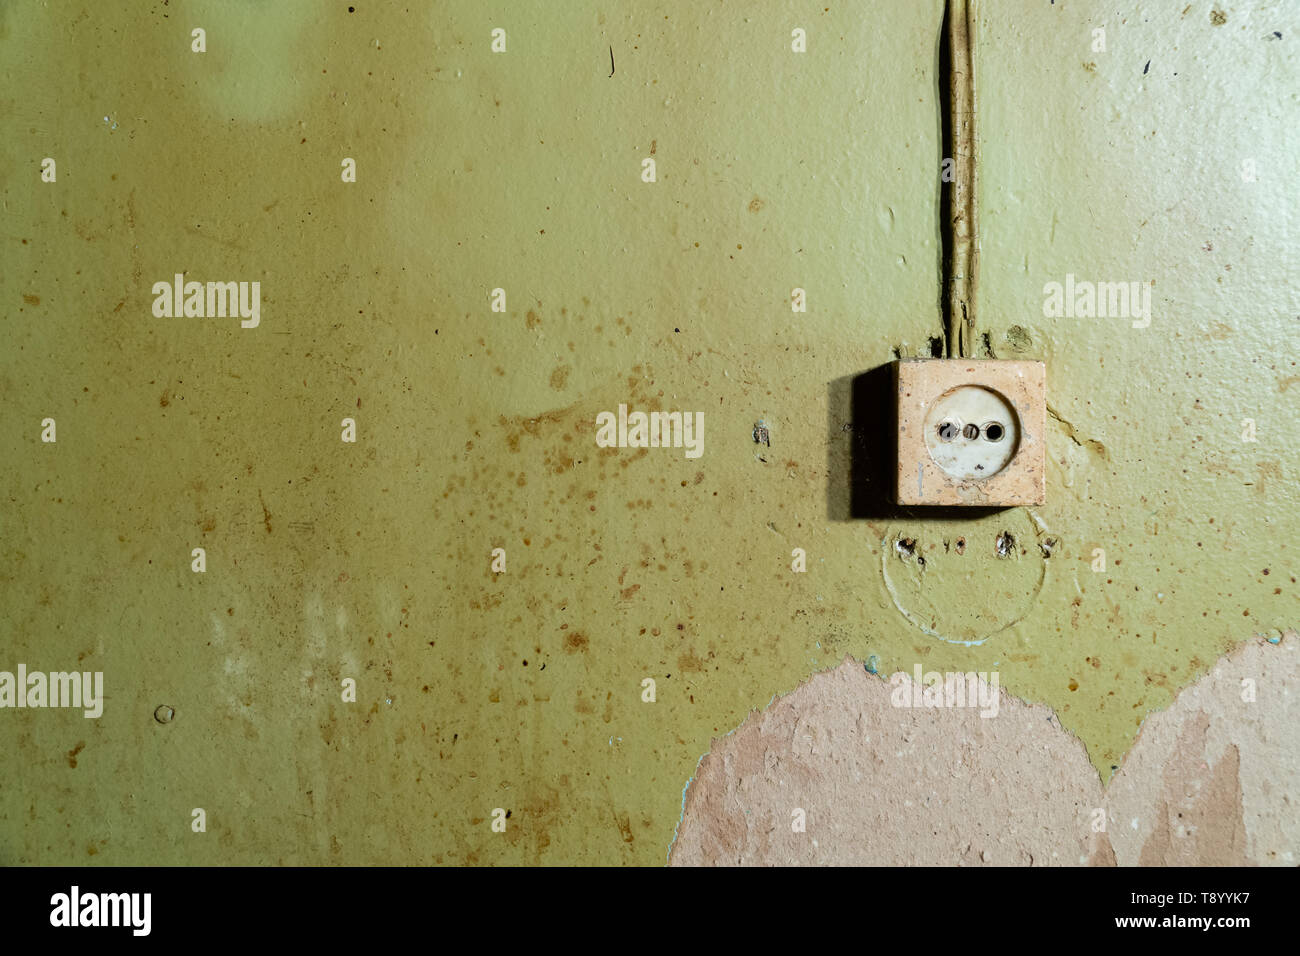 Old power socket isolated on damaged green wall - reconstruction background - Stock Image